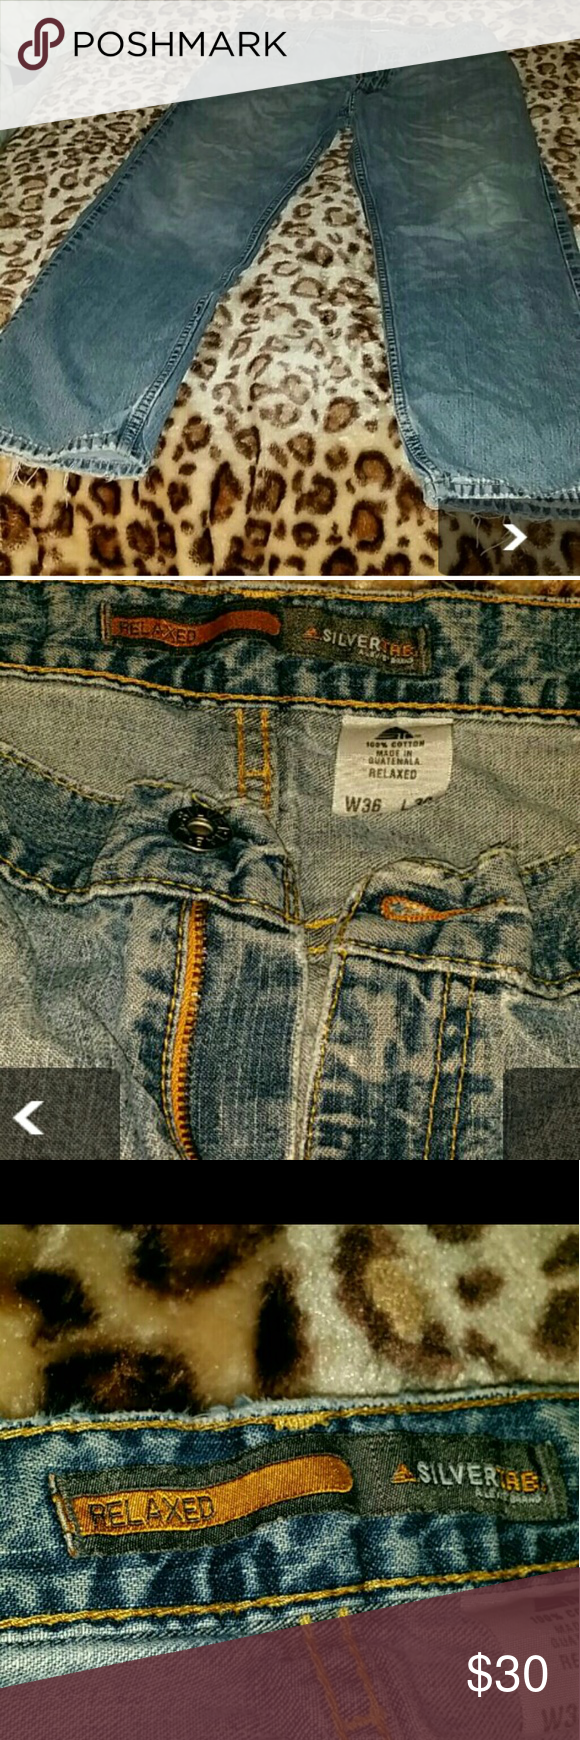 Men Levi Jeans Size 36W L30 very used there a hole in the rear pockets check pictures in good condition. Levi's Jeans Relaxed